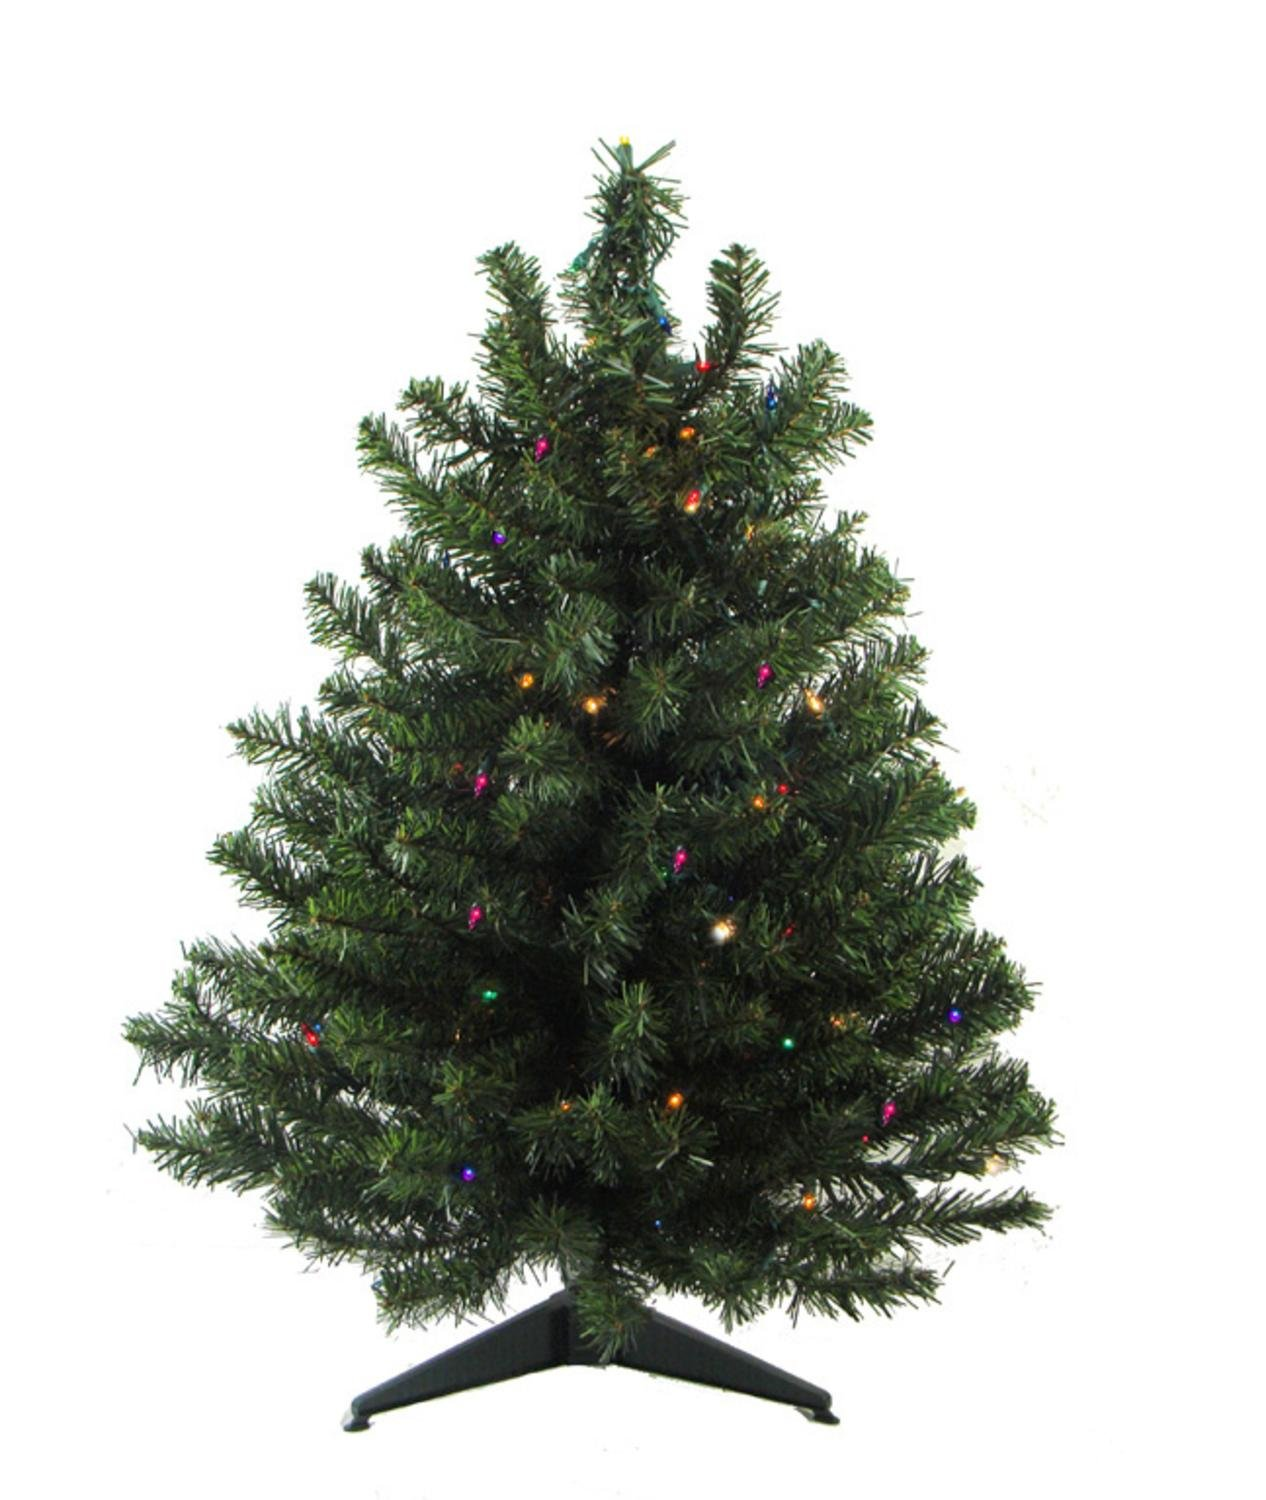 Darice 3' Pre-Lit LED Natural Two-Tone Pine Artificial Christmas Tree - Multi Lights